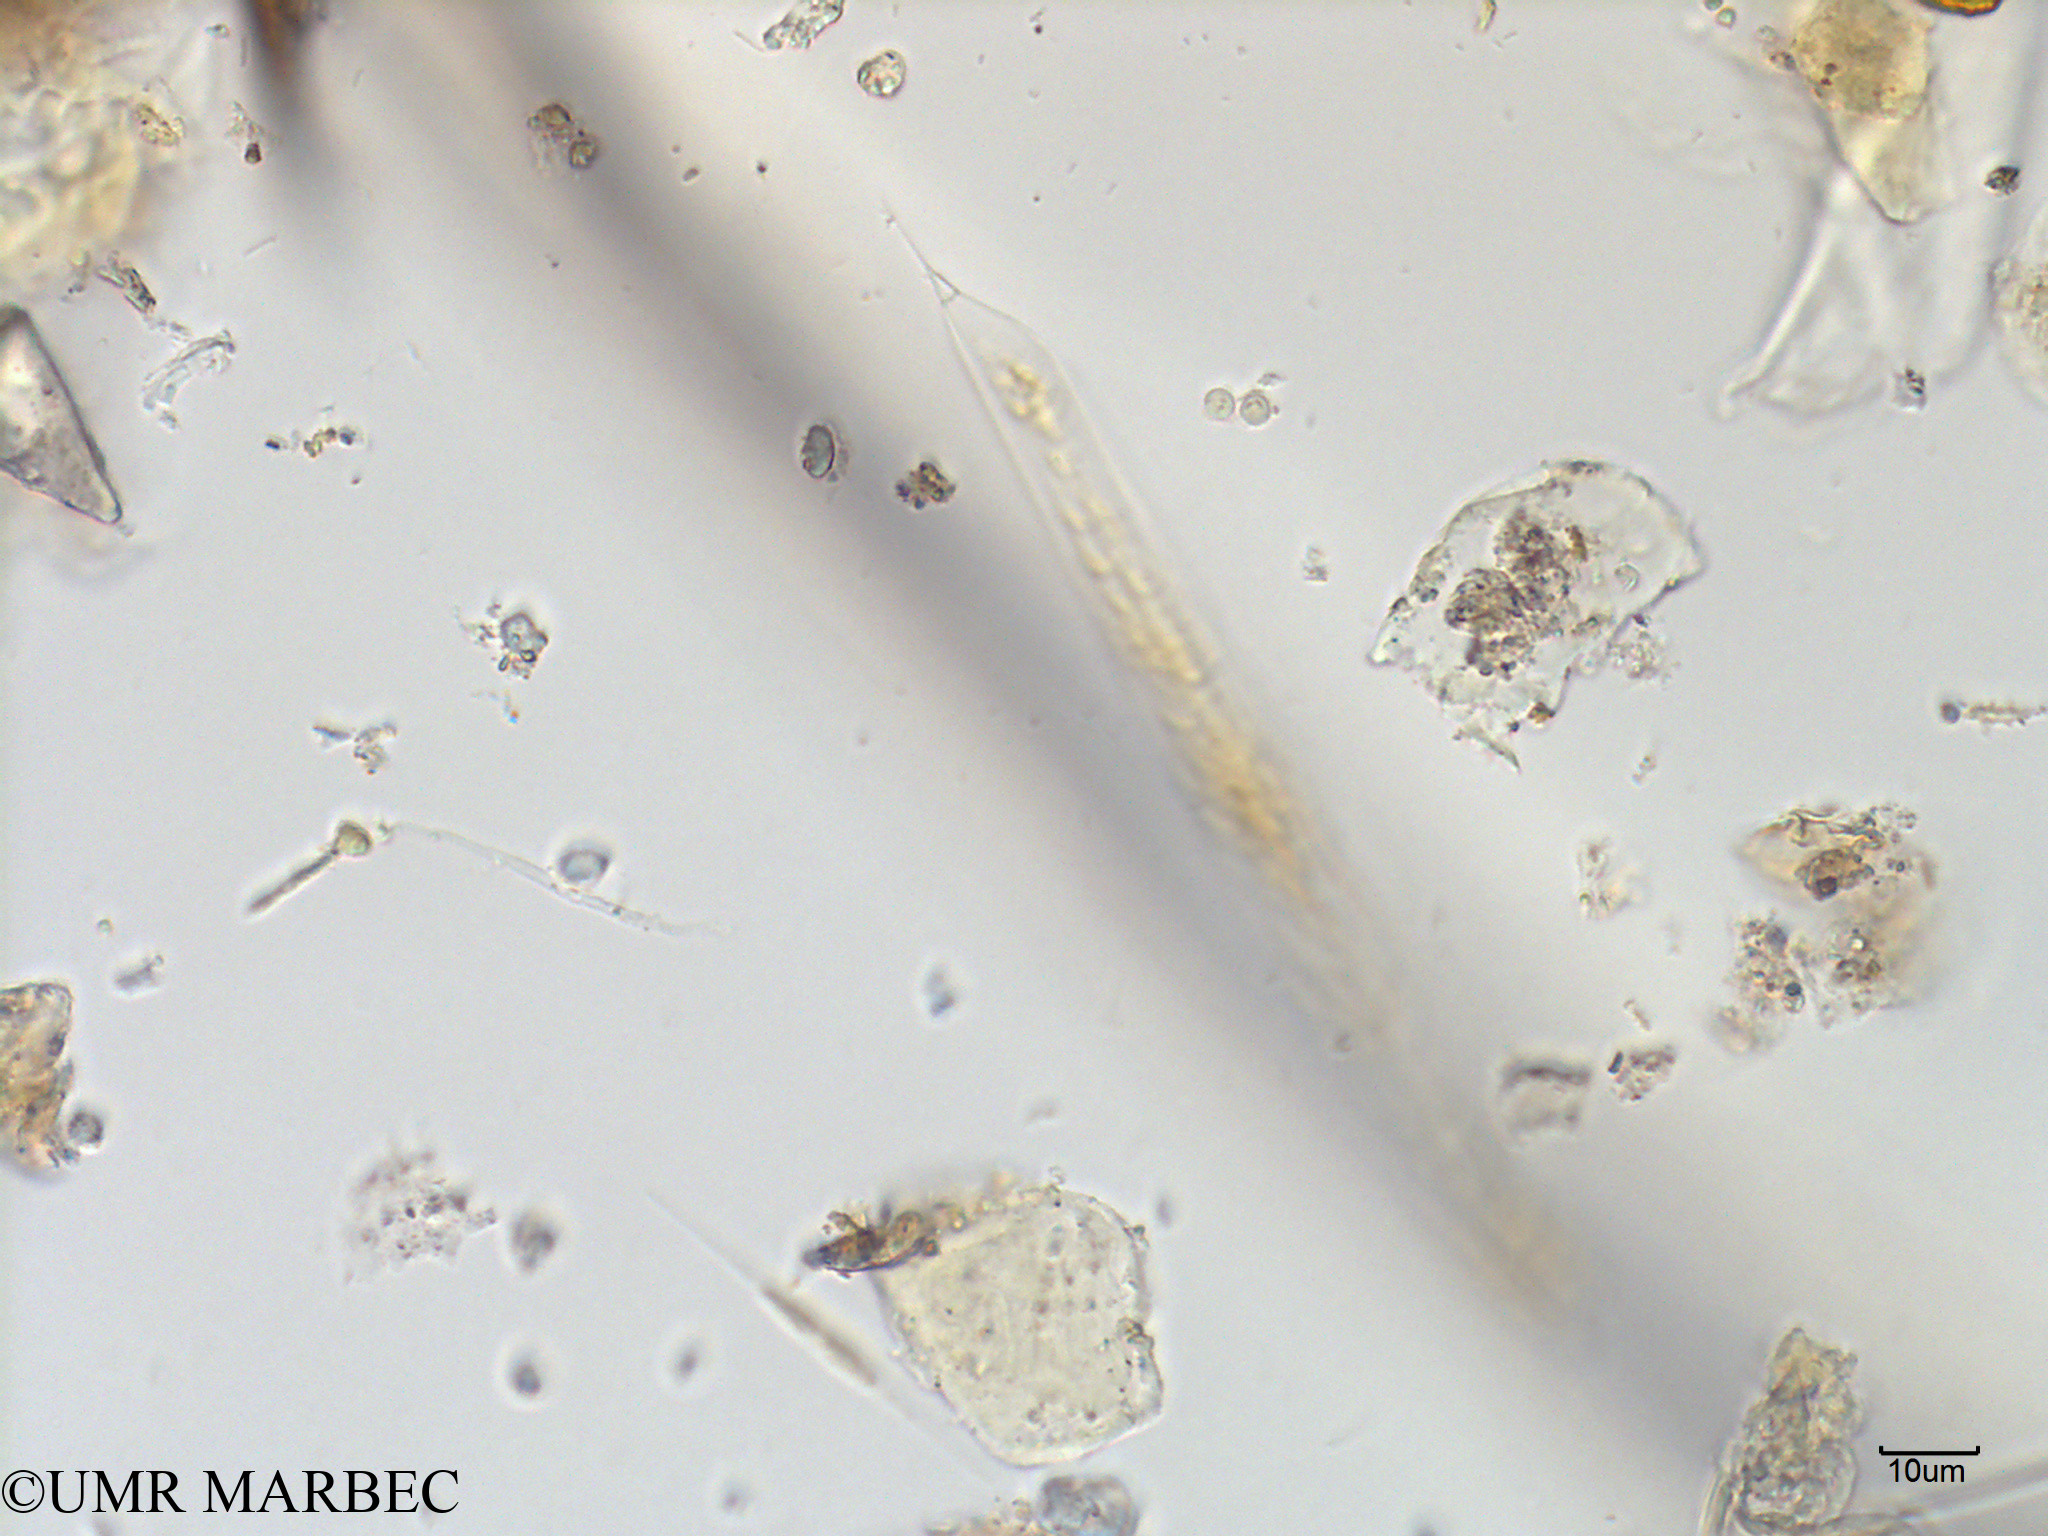 phyto/Scattered_Islands/mayotte_lagoon/SIREME May 2016/Rhizosolenia imbricata (MAY2_rhizo b-2).tif(copy).jpg